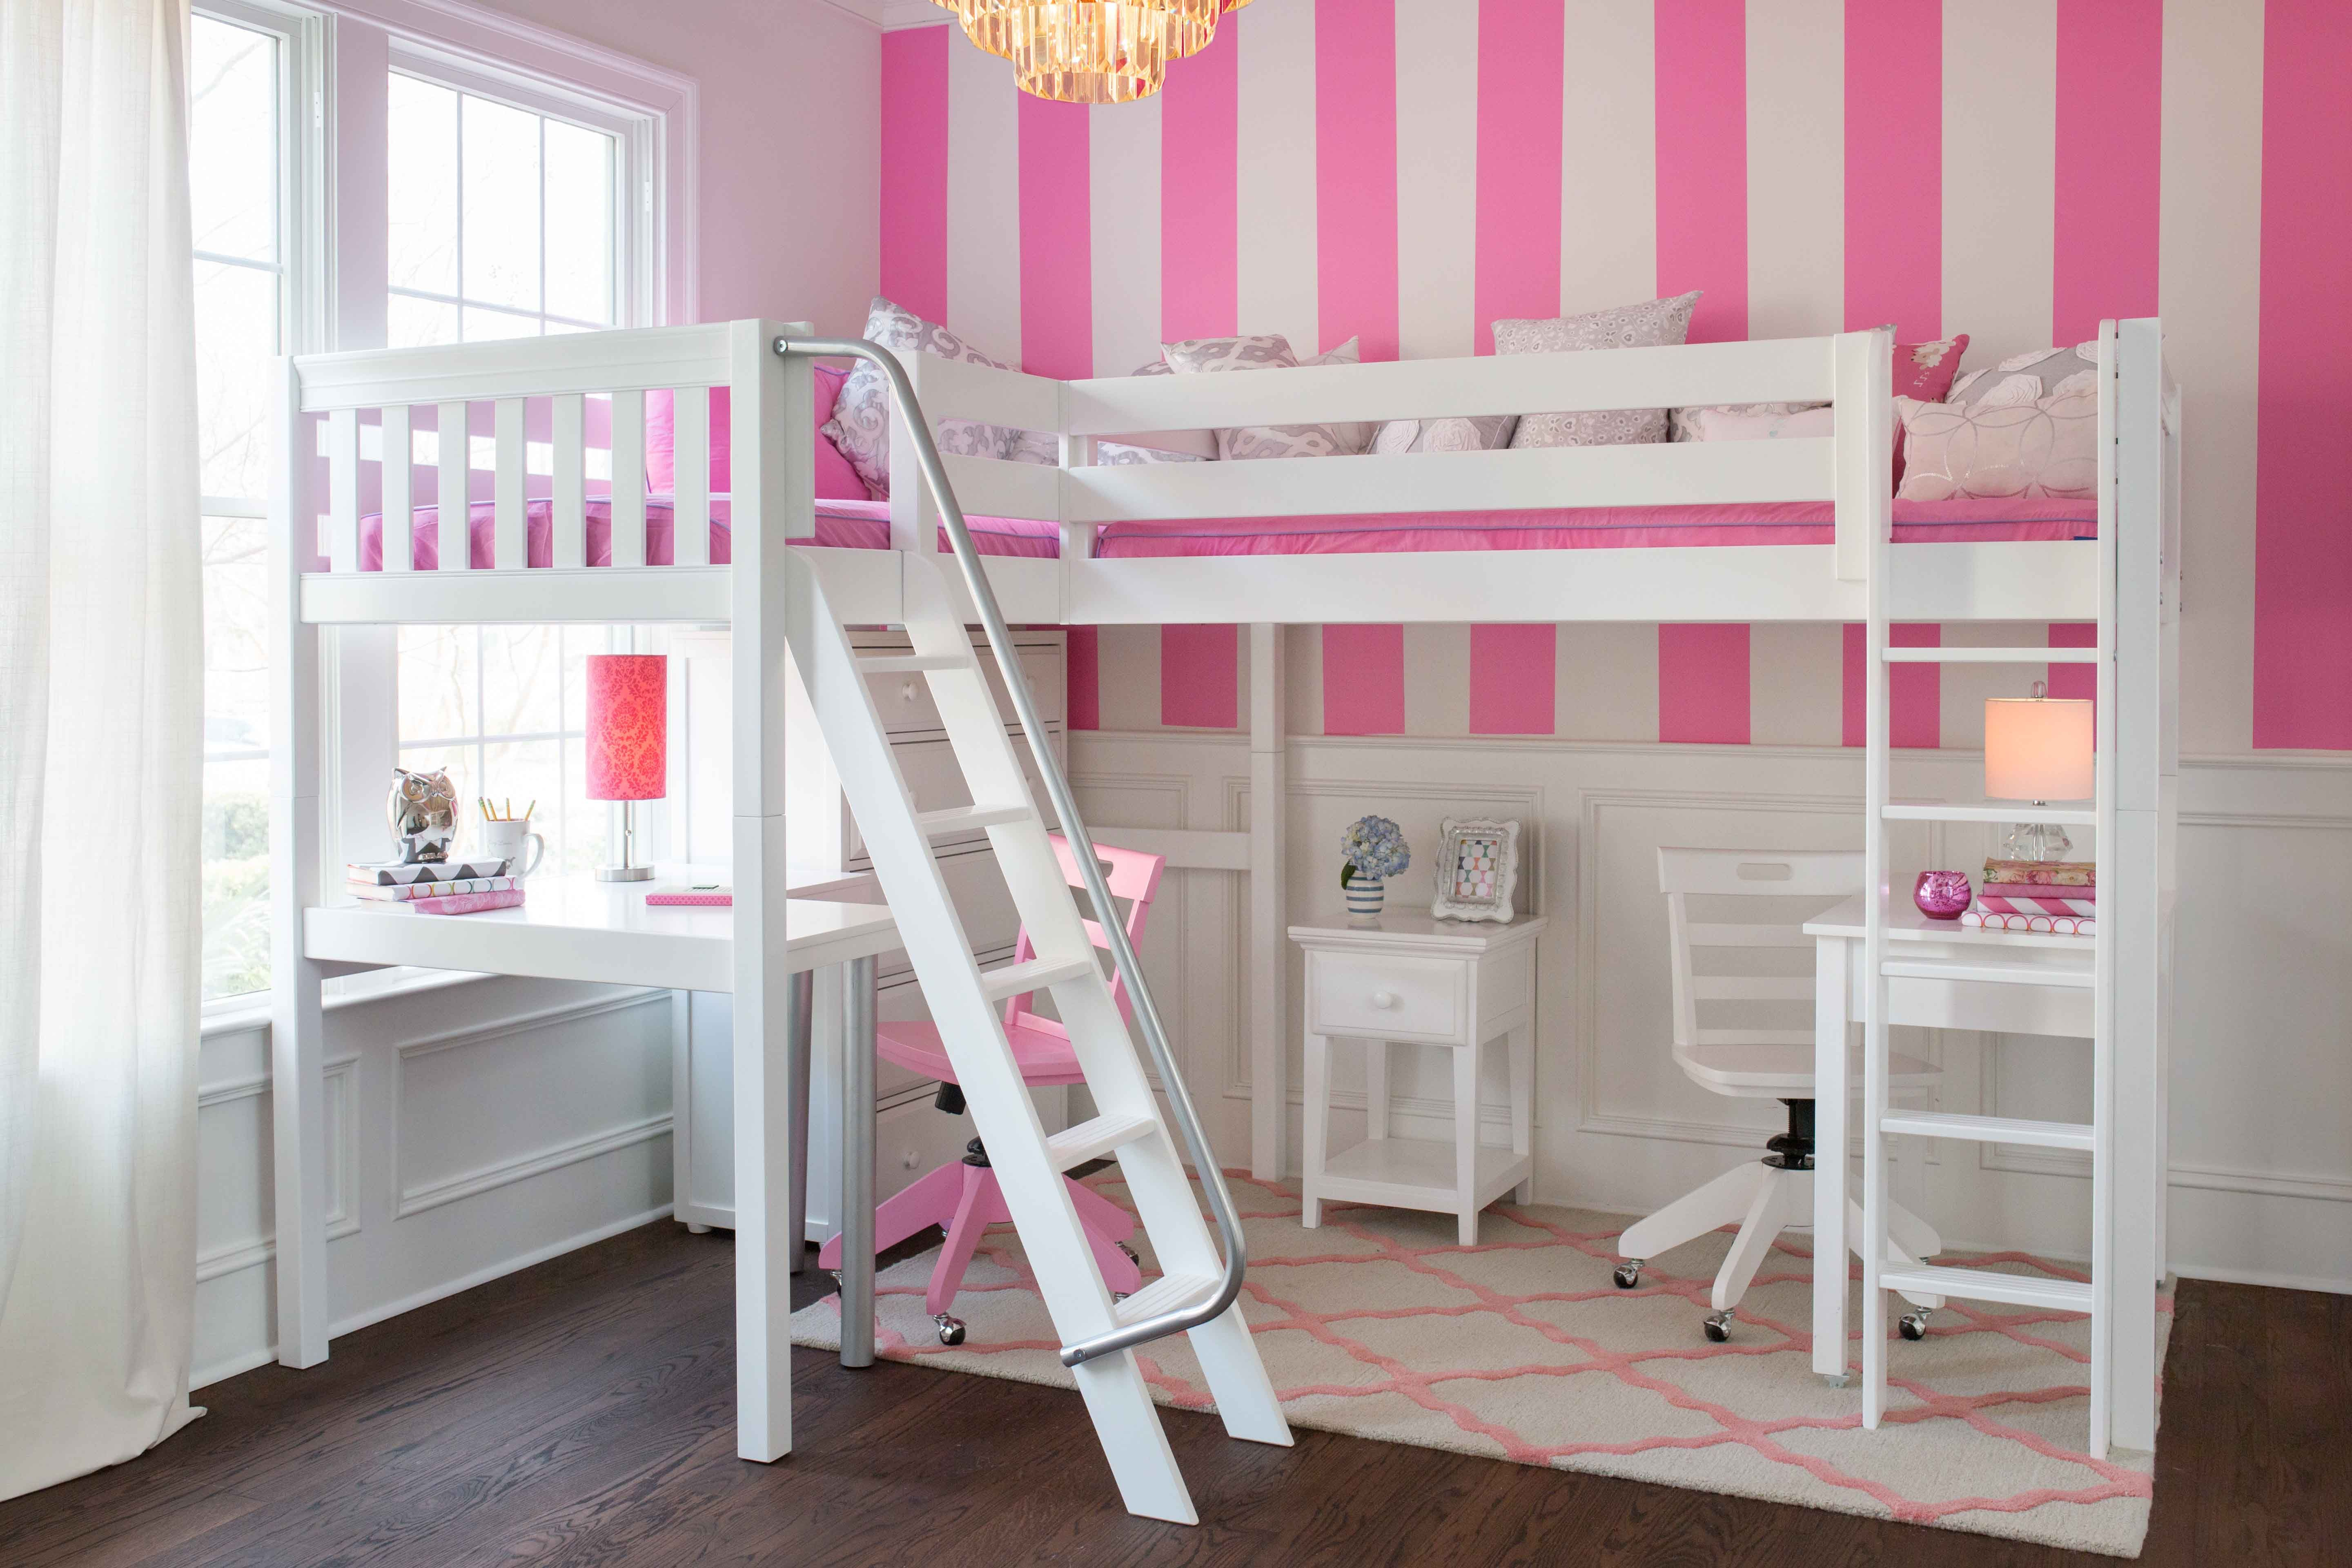 Corner Loft Bed With Two Desks Better Alternative To Bunk Bed Since You Open Up More Floor Space You Get 2 Study Area U Corner Loft Beds Corner Loft Loft Bed